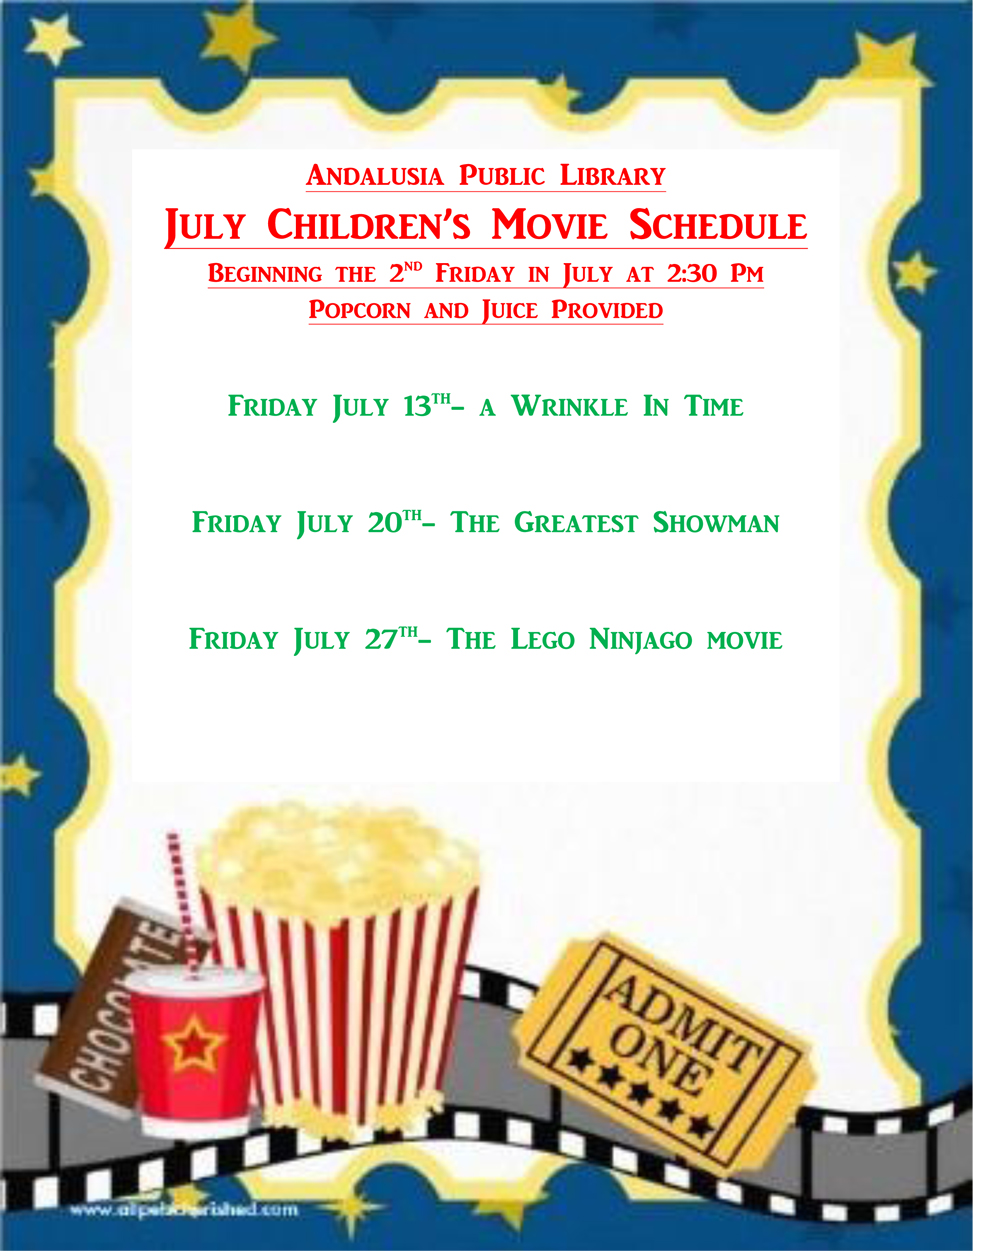 Andalusia Public Library - July Children's Movie Schedule